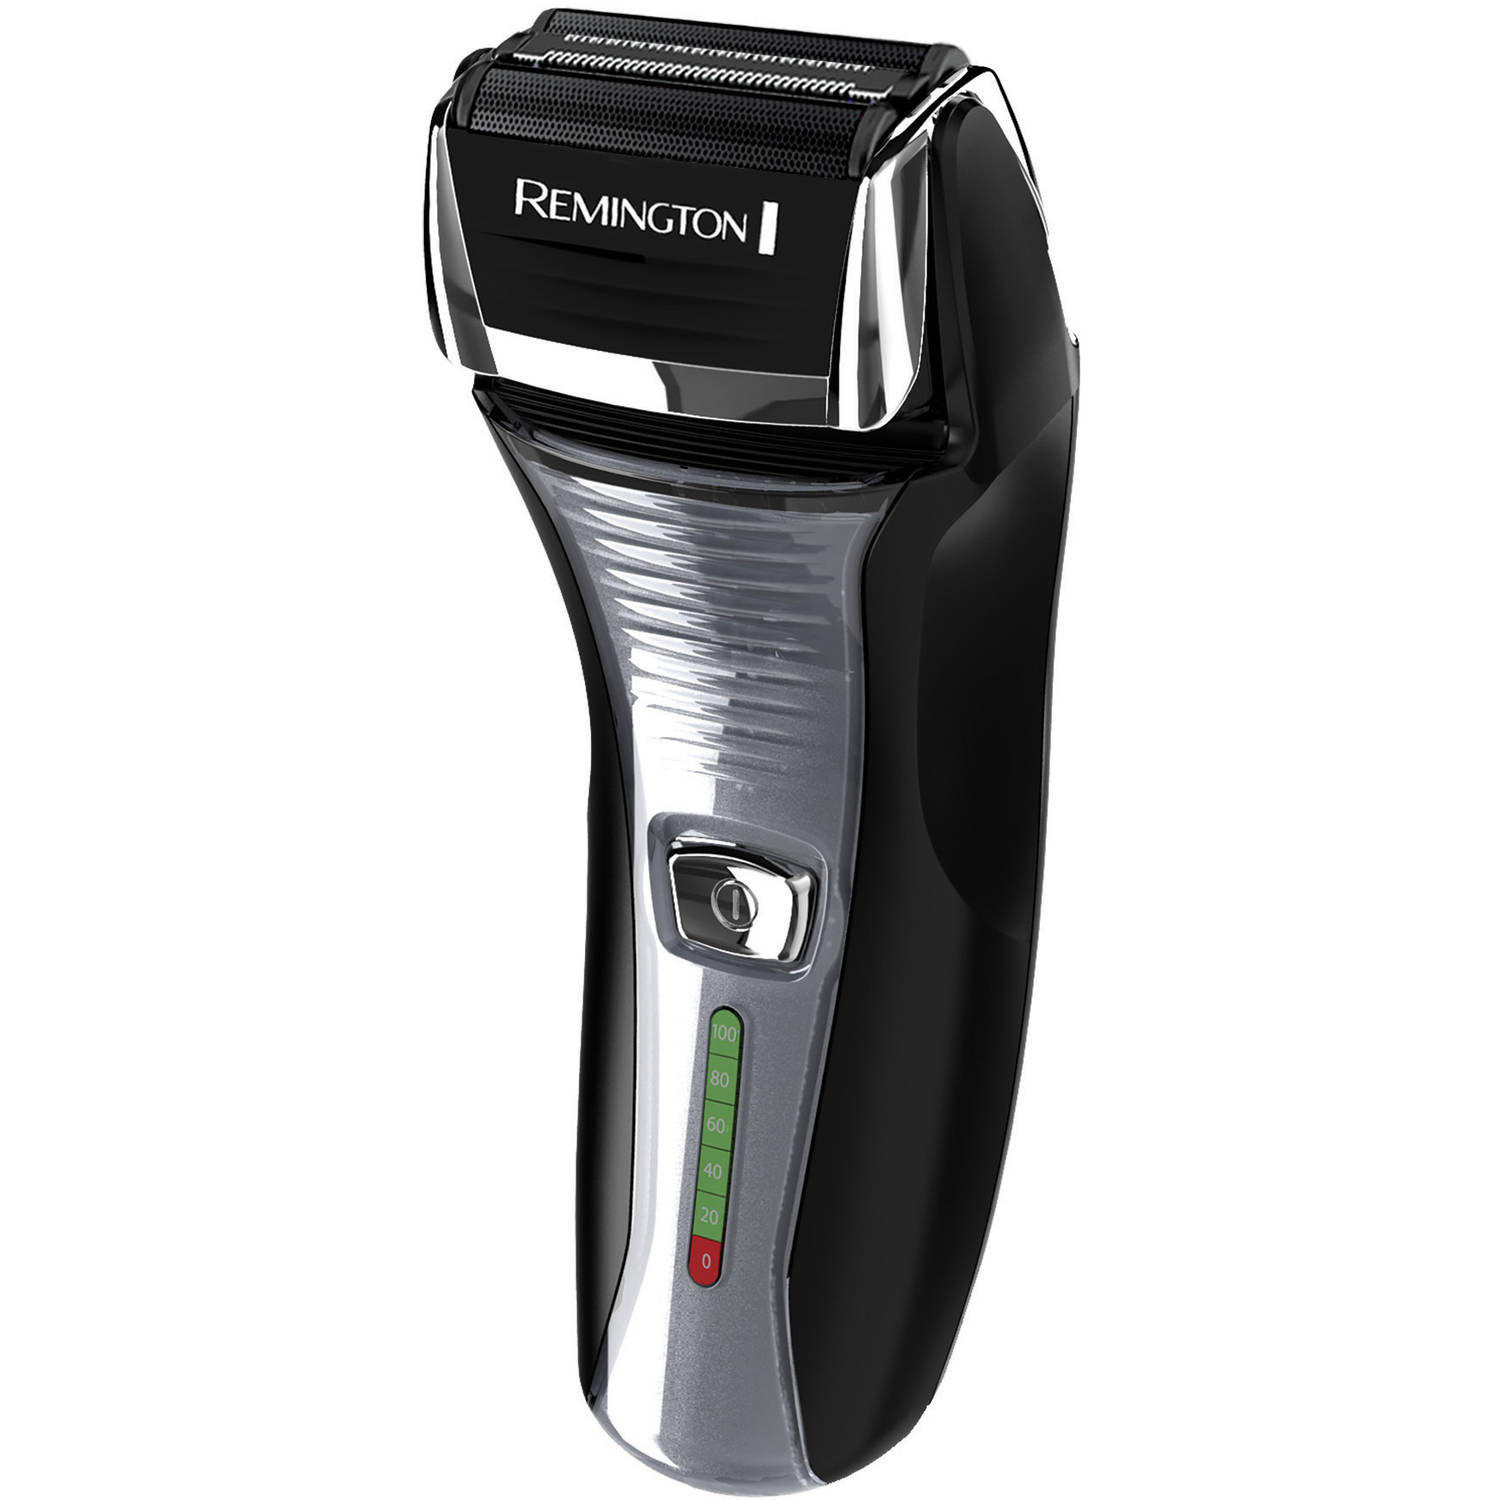 Remington F5-5800 Rechargeable Pivot & Flex Foil Shaver with Interceptor Shaving Technology